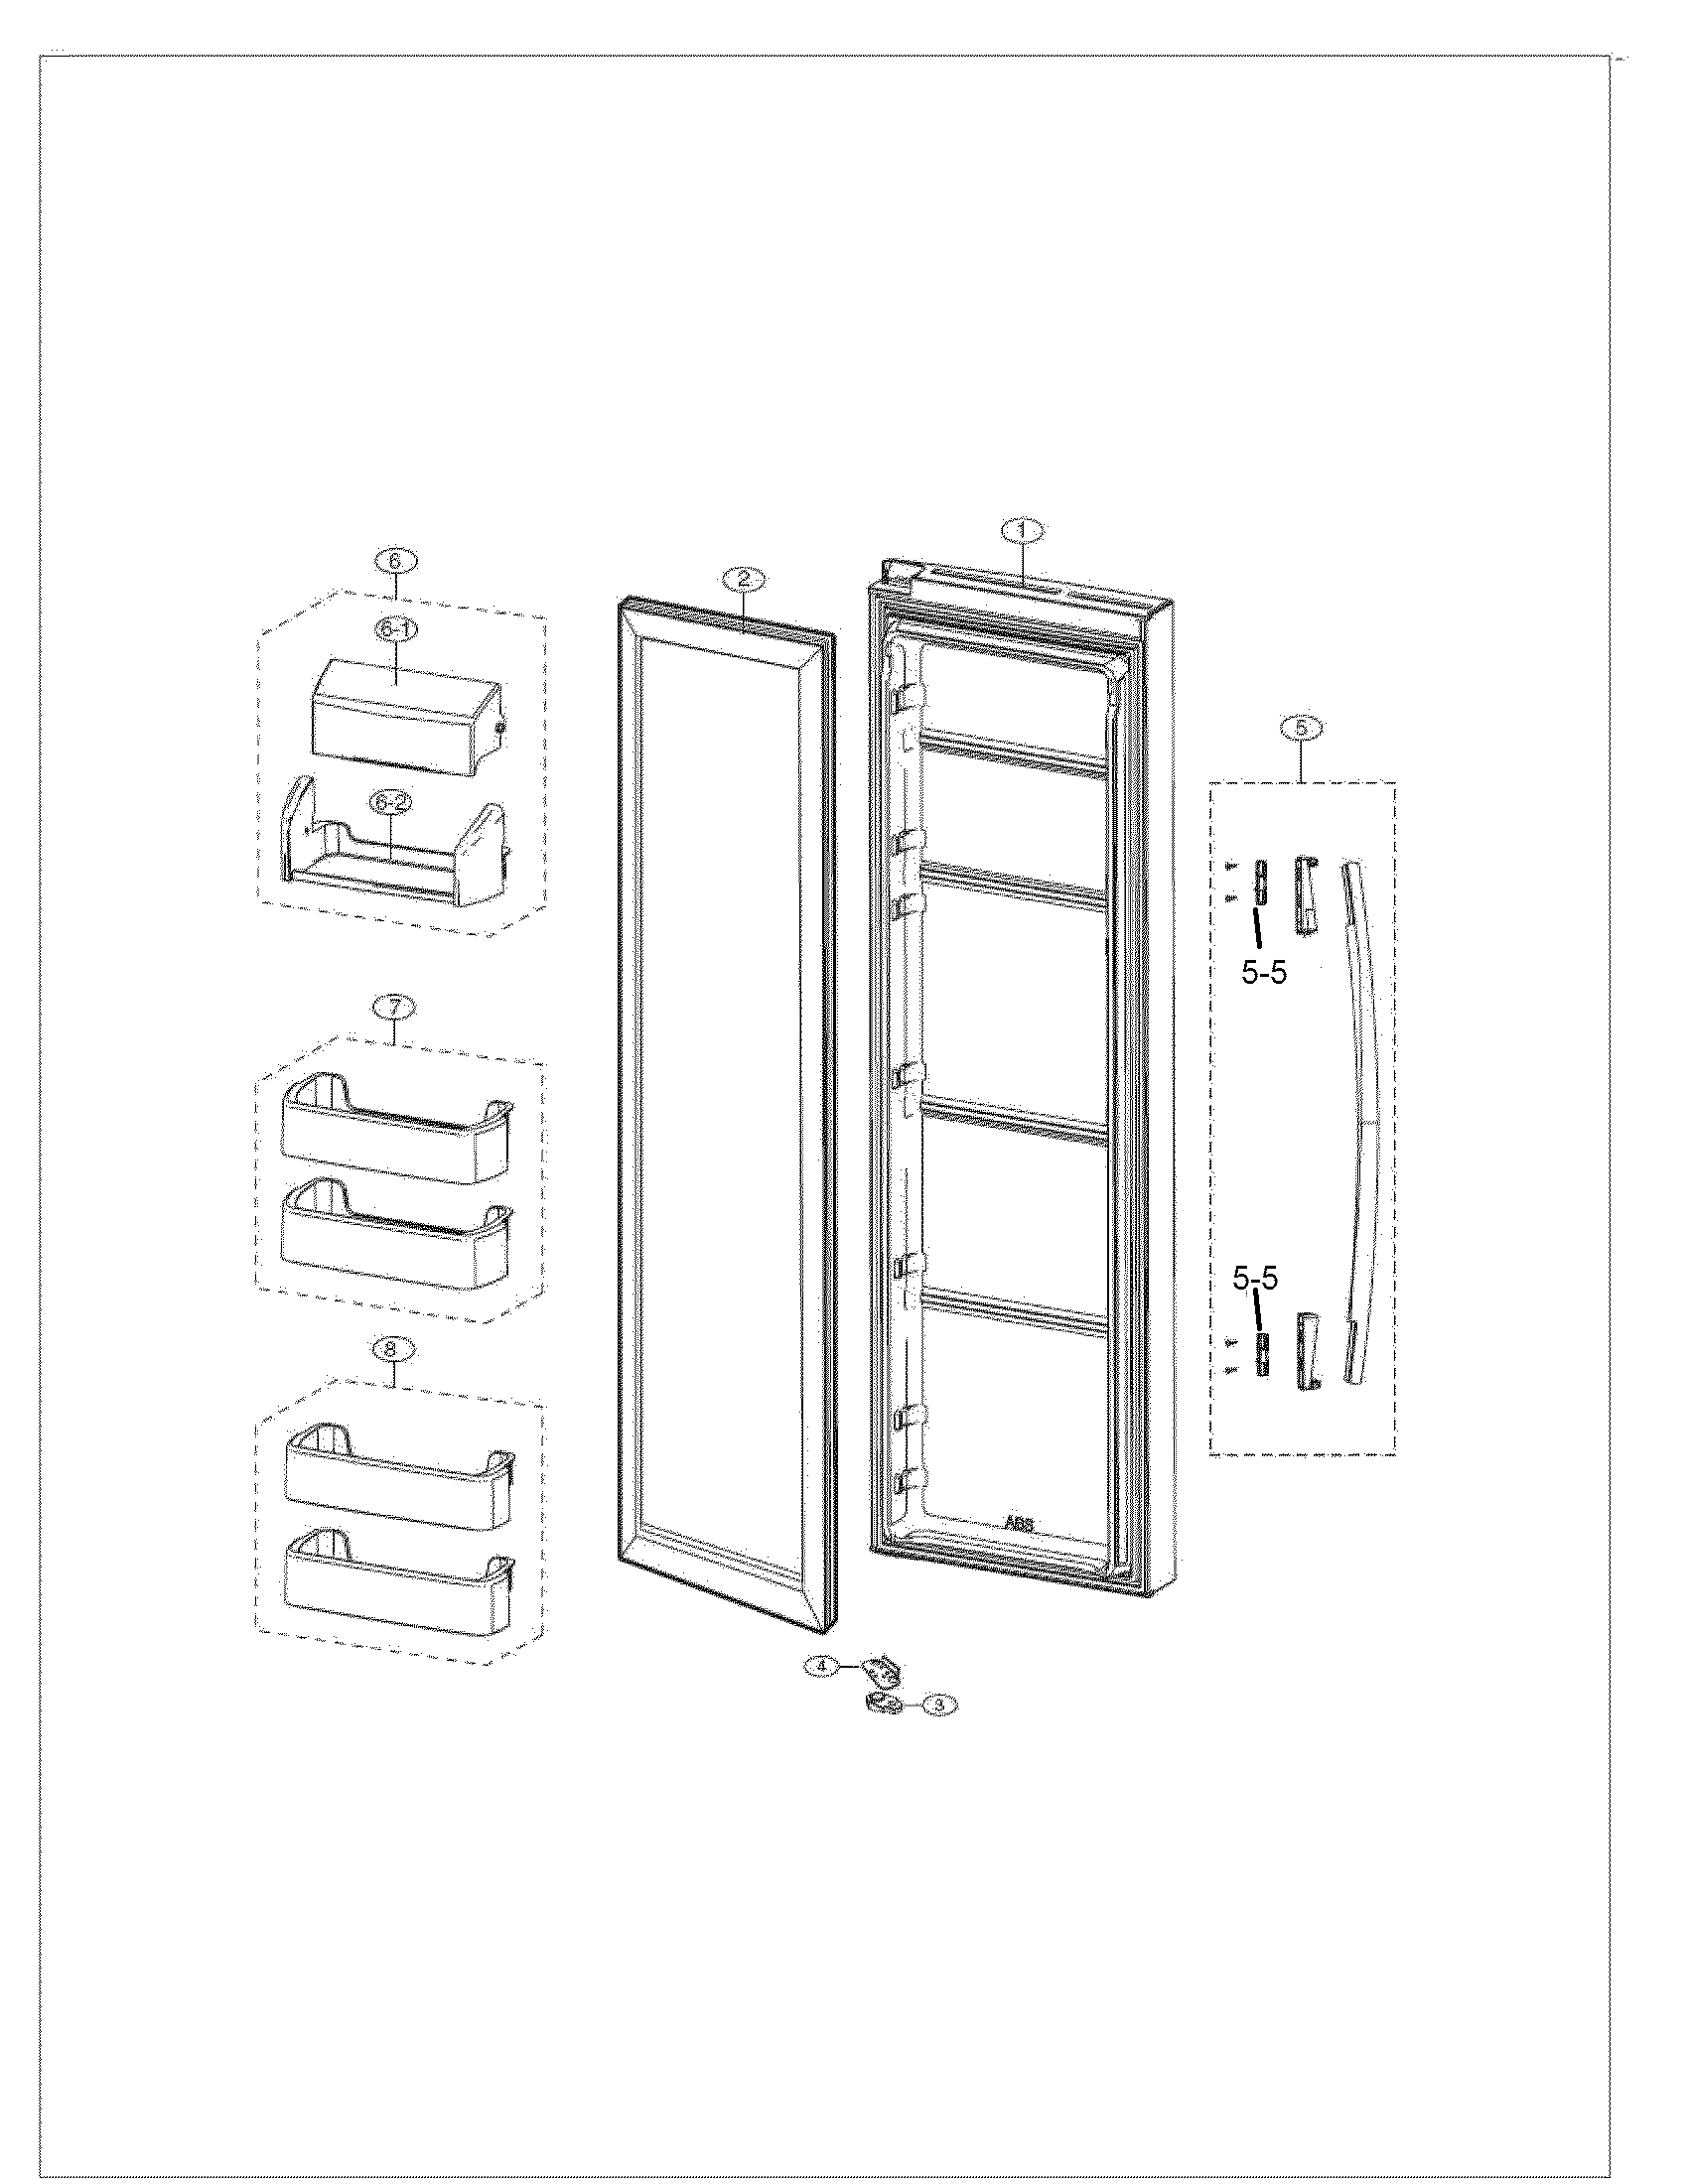 samsung refrigerator model rs261mdrs manual